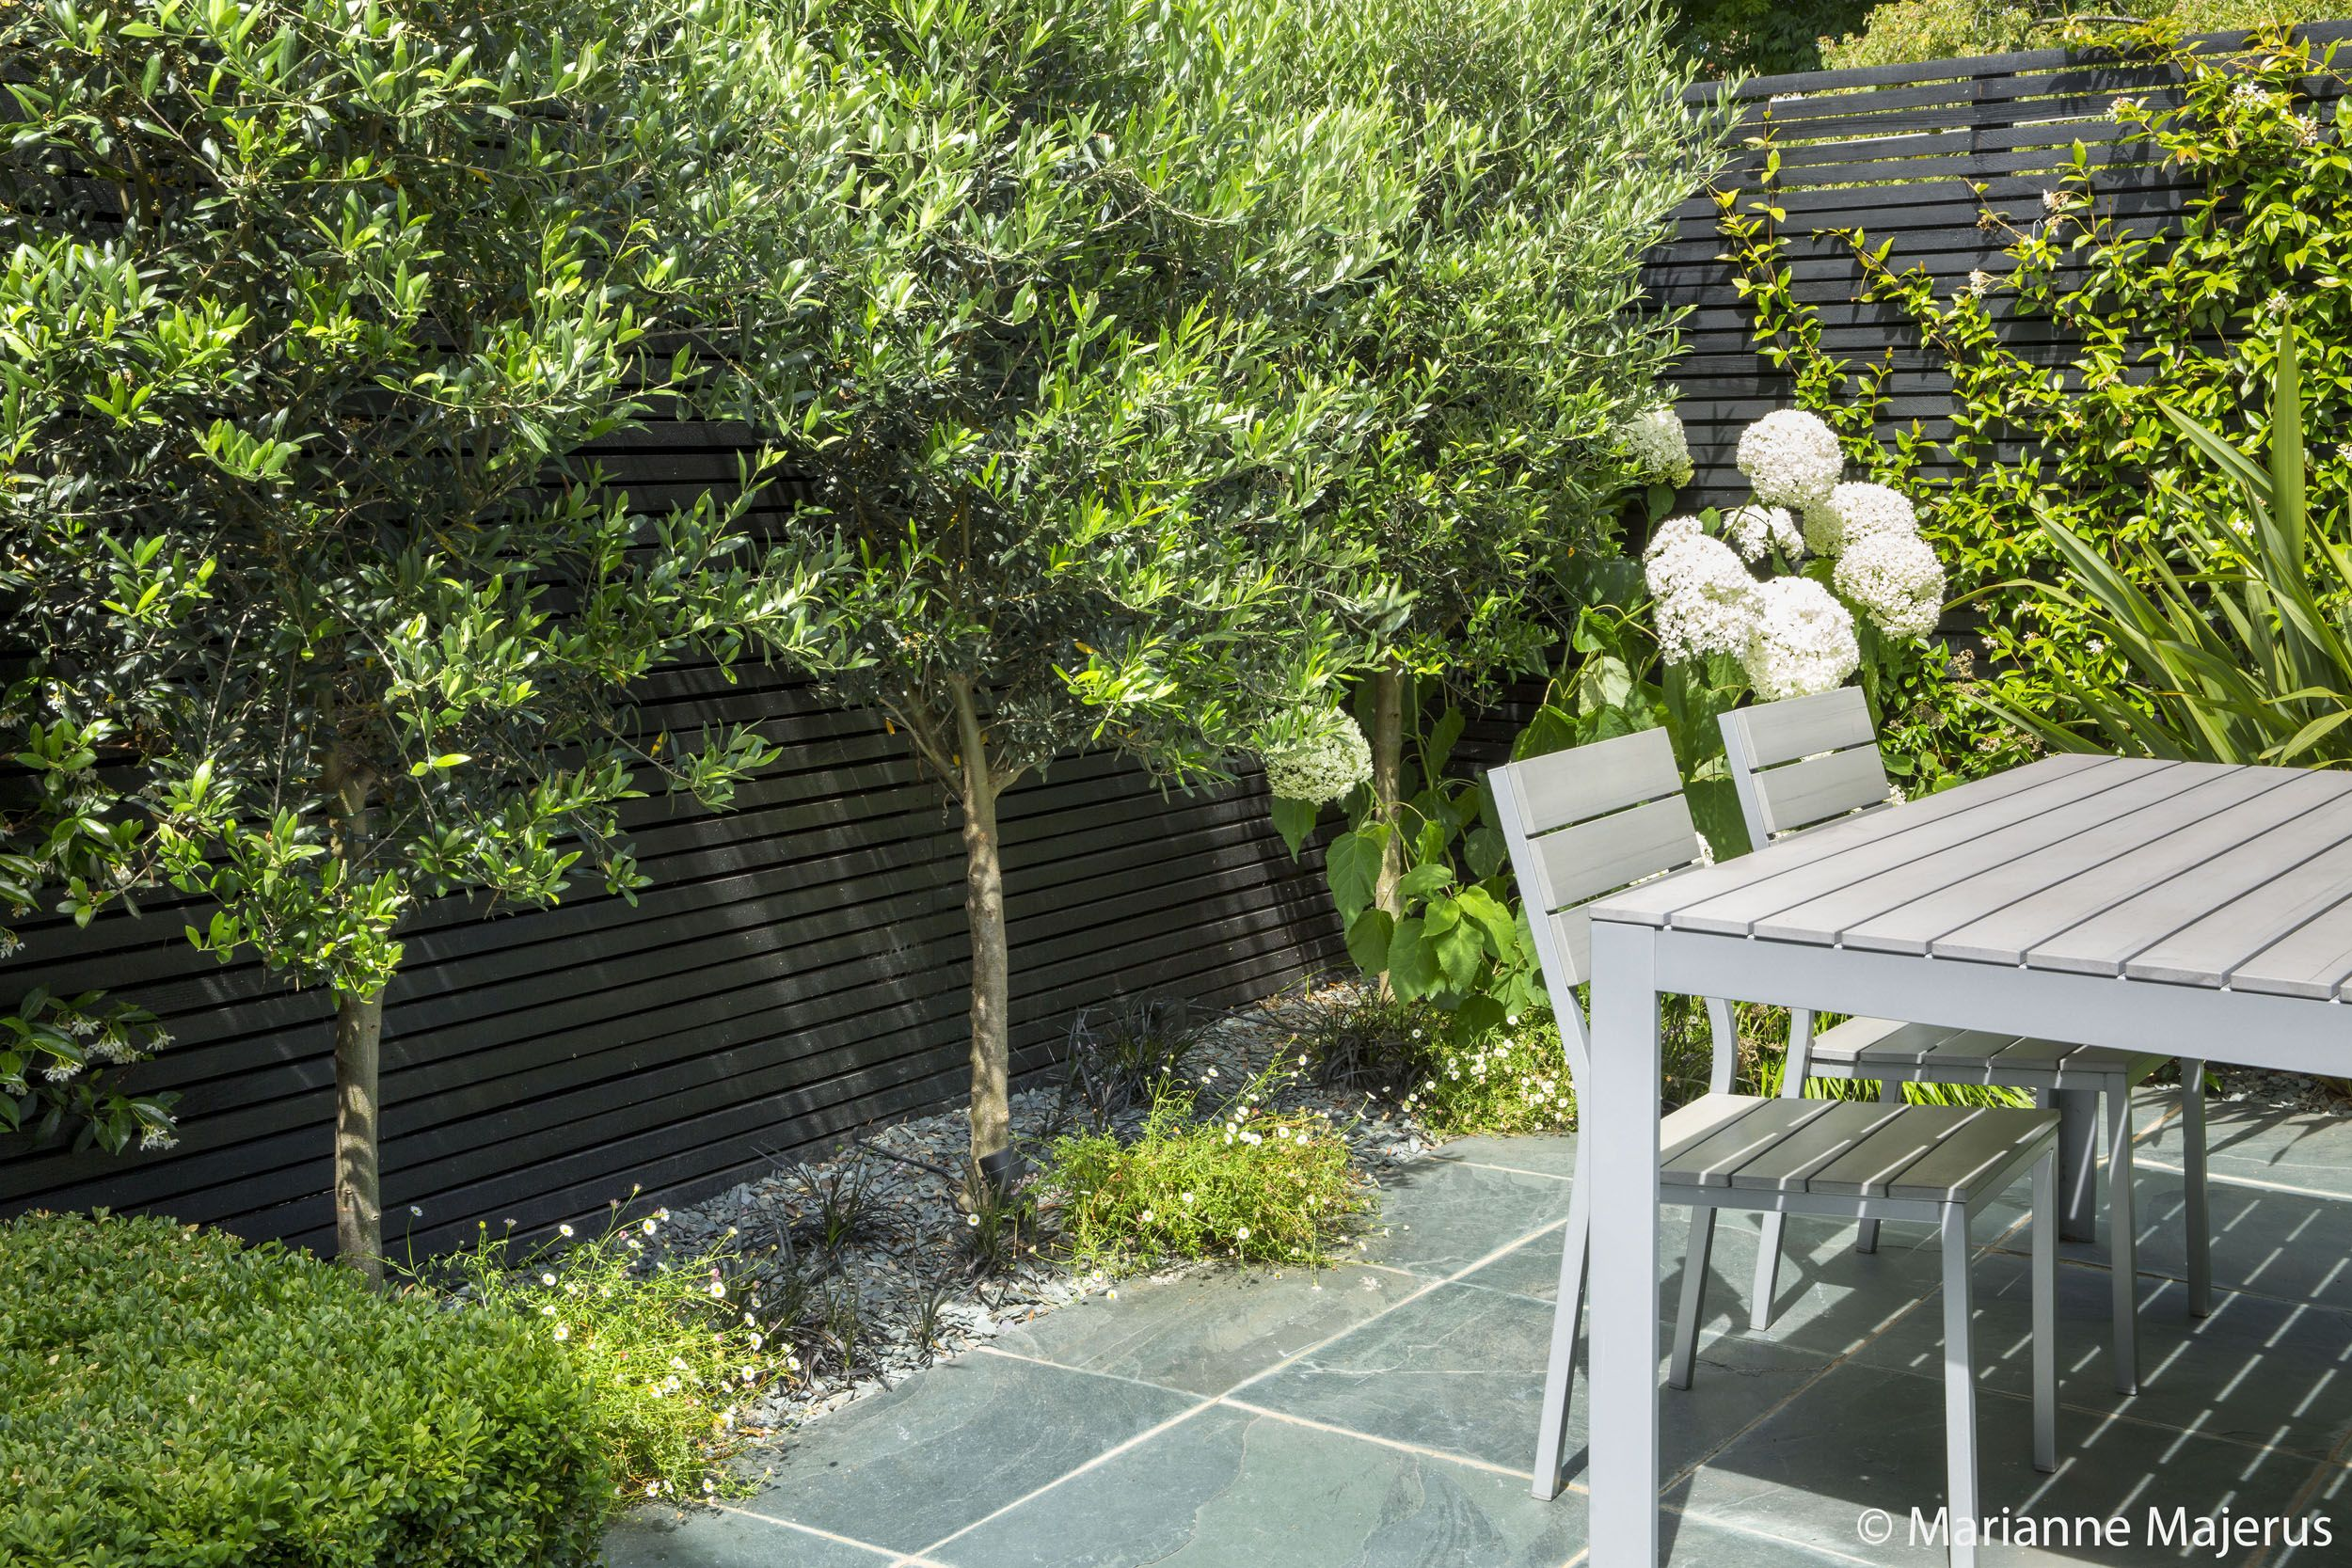 See pictures of a small urban garden recently transformed by the